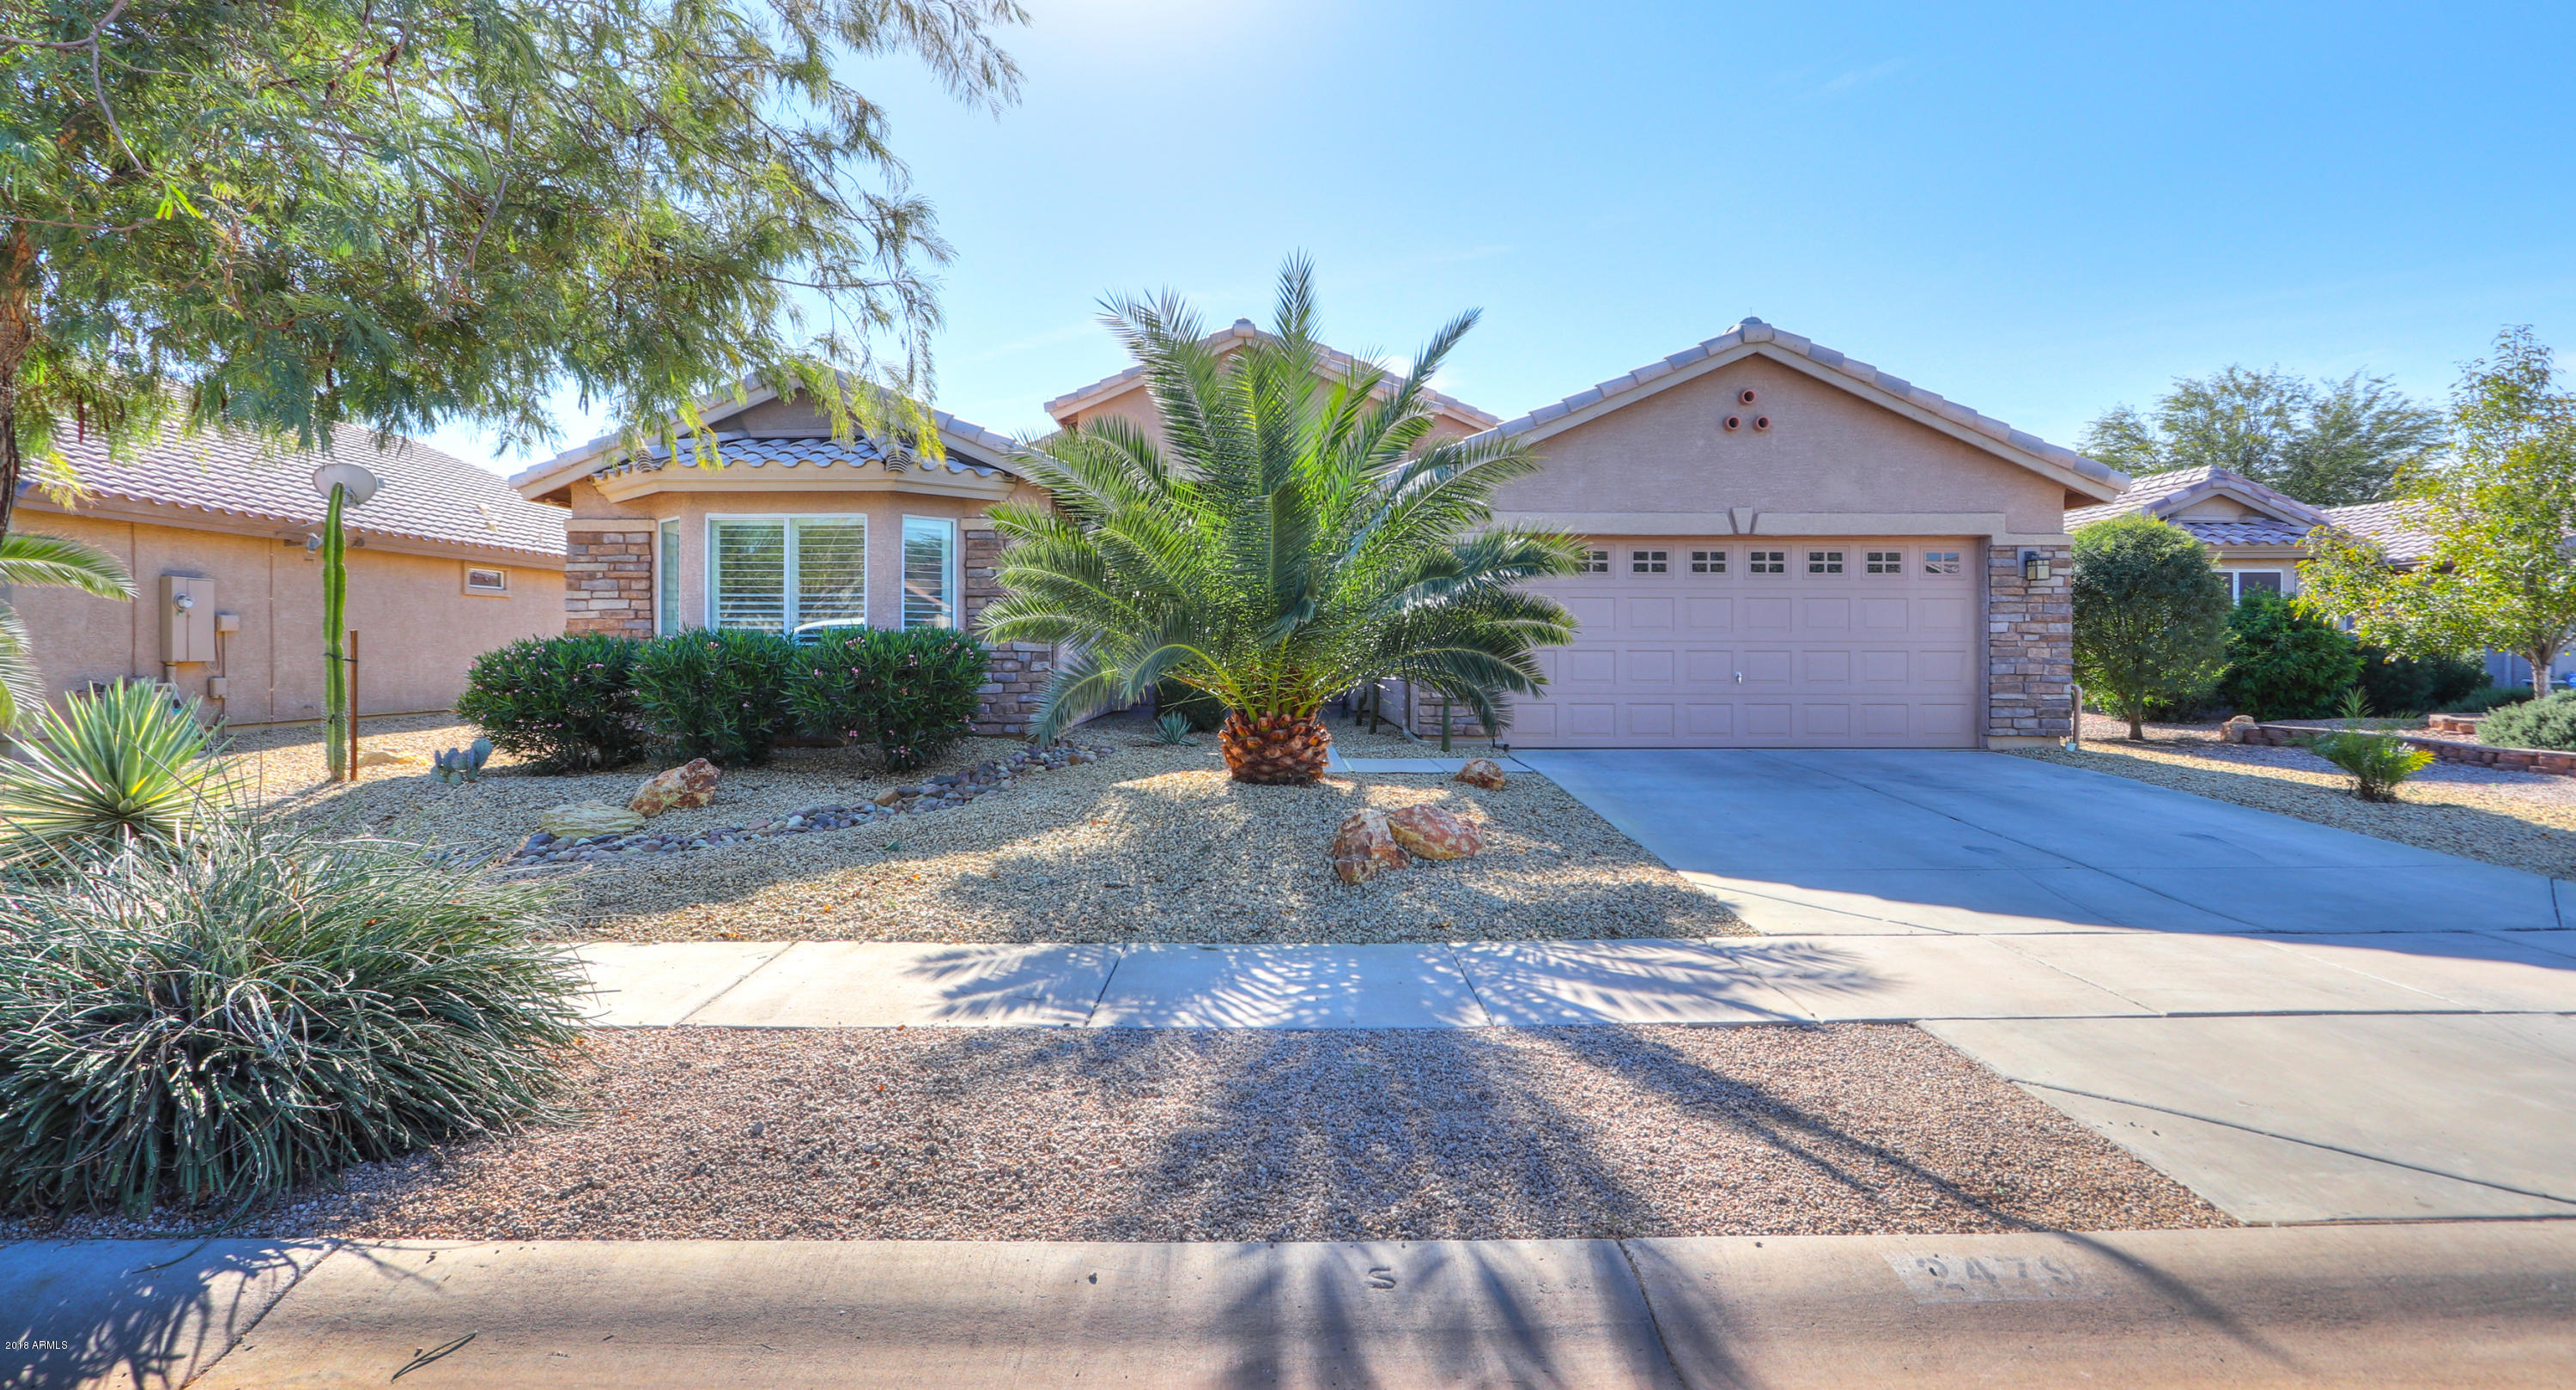 Photo for 2479 E Golden Court, Casa Grande, AZ 85194 (MLS # 5862092)